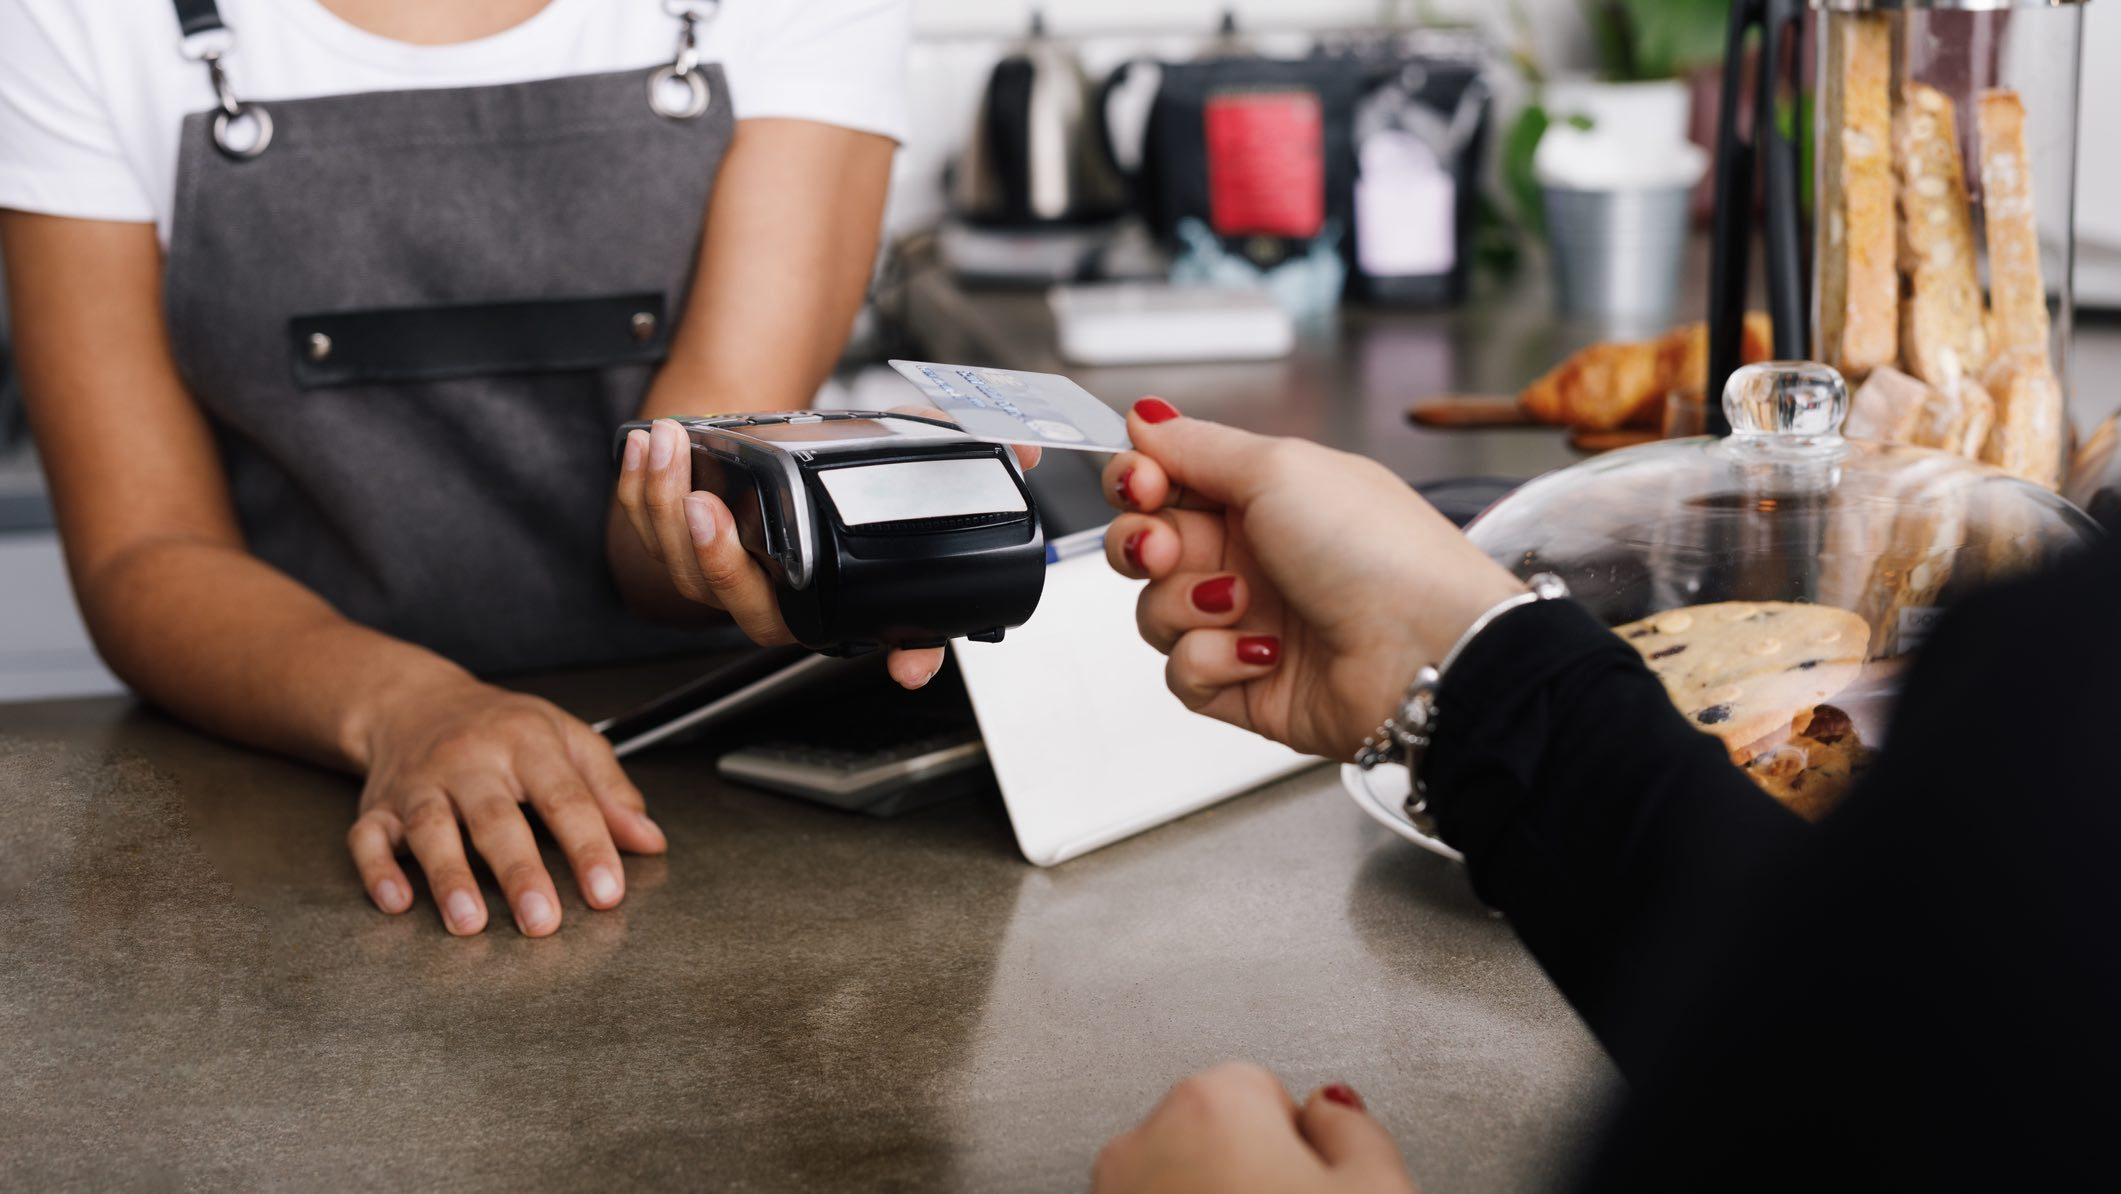 Person paying via eftpos at a cafe.